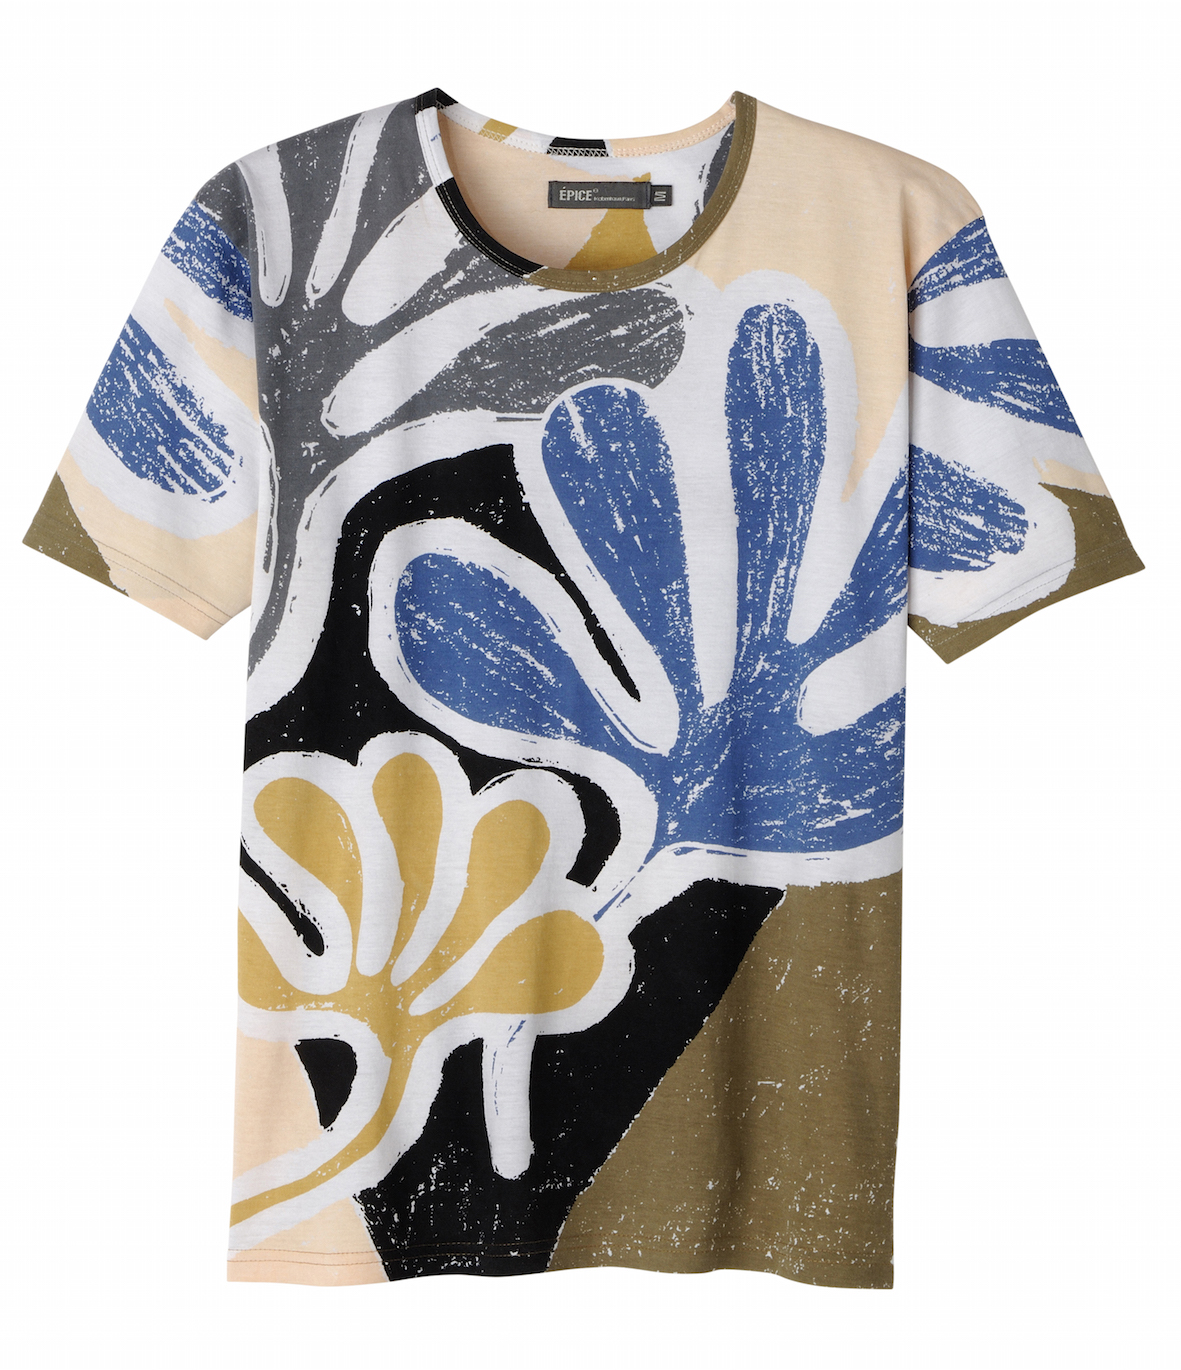 ユニセックス T-shirt MATISSE DESIGN TS1877-01